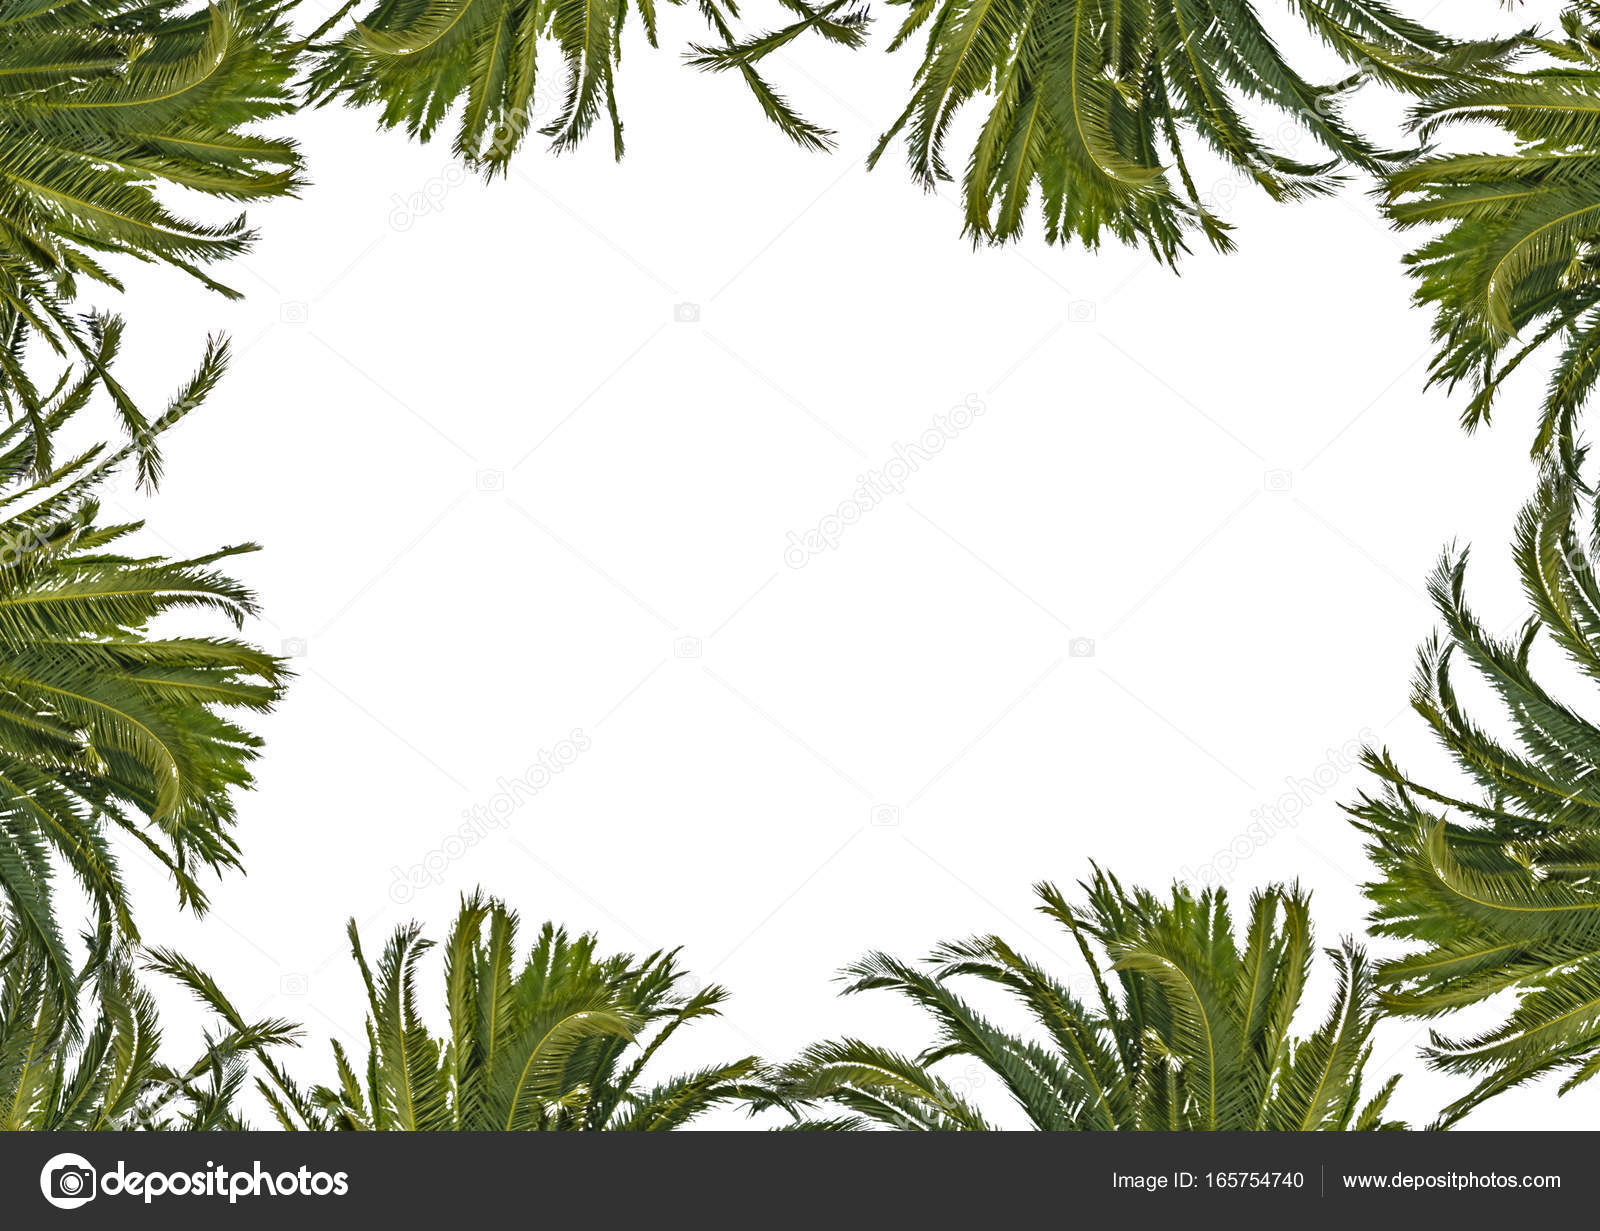 Marco blanco con bordes decorados planta — Fotos de Stock ...